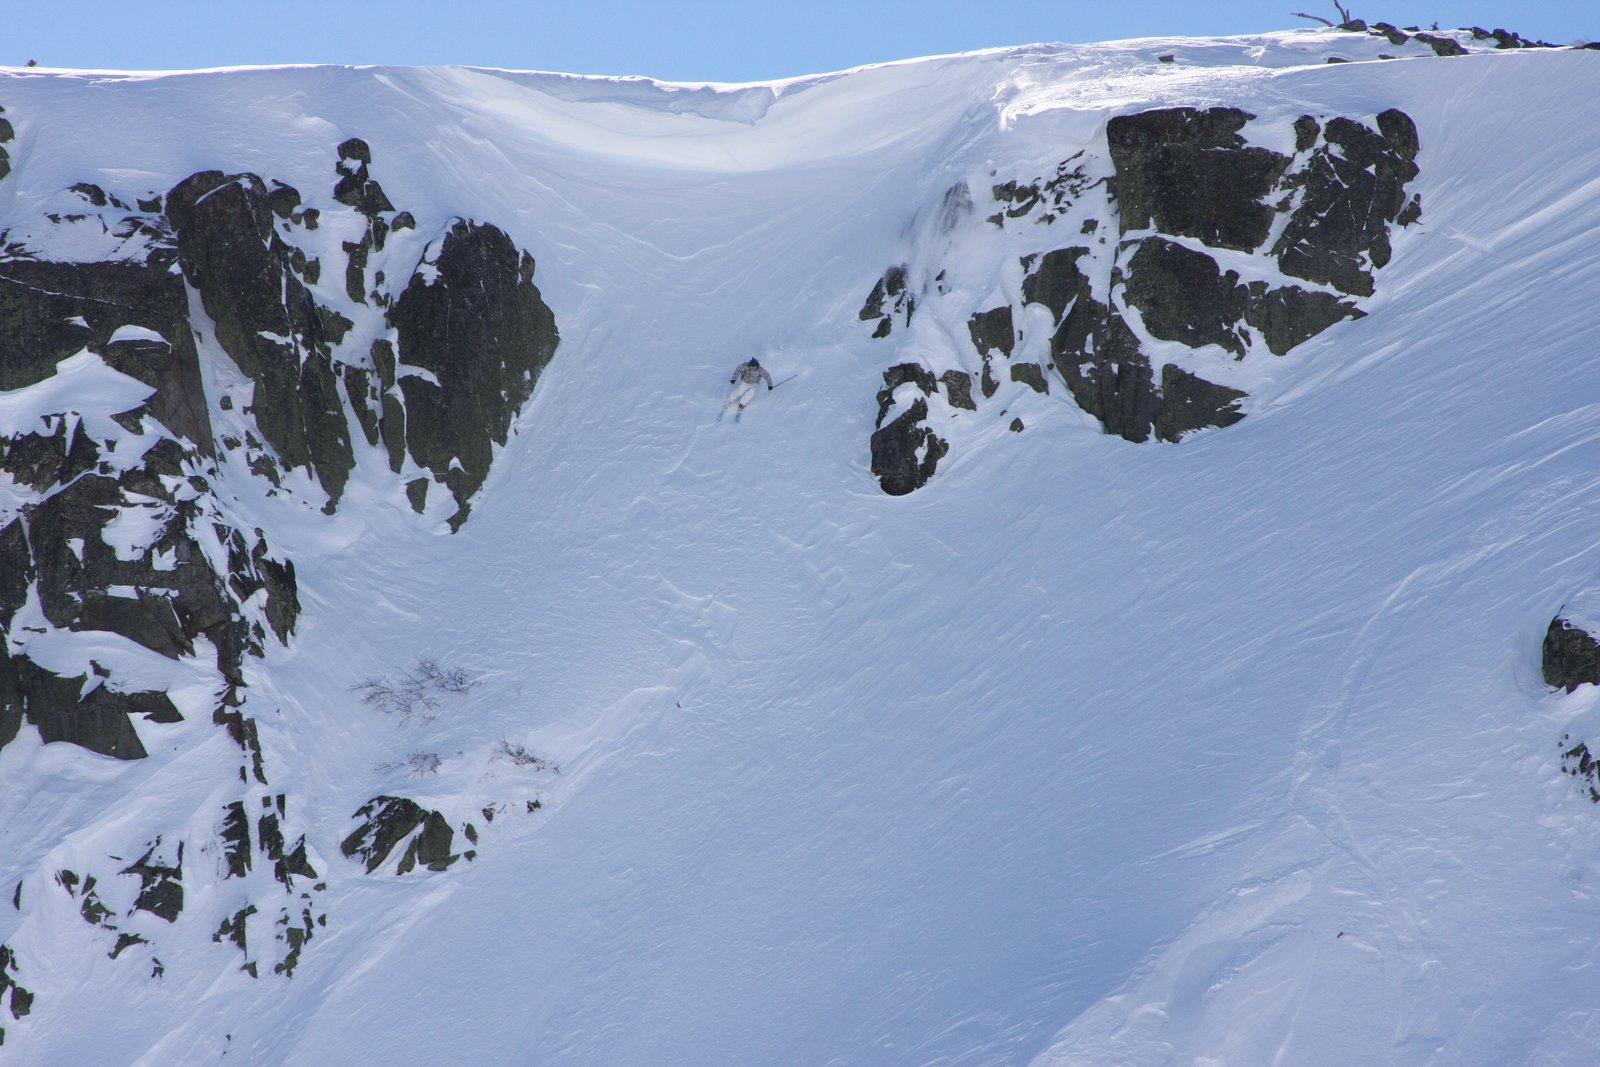 Dropping in...